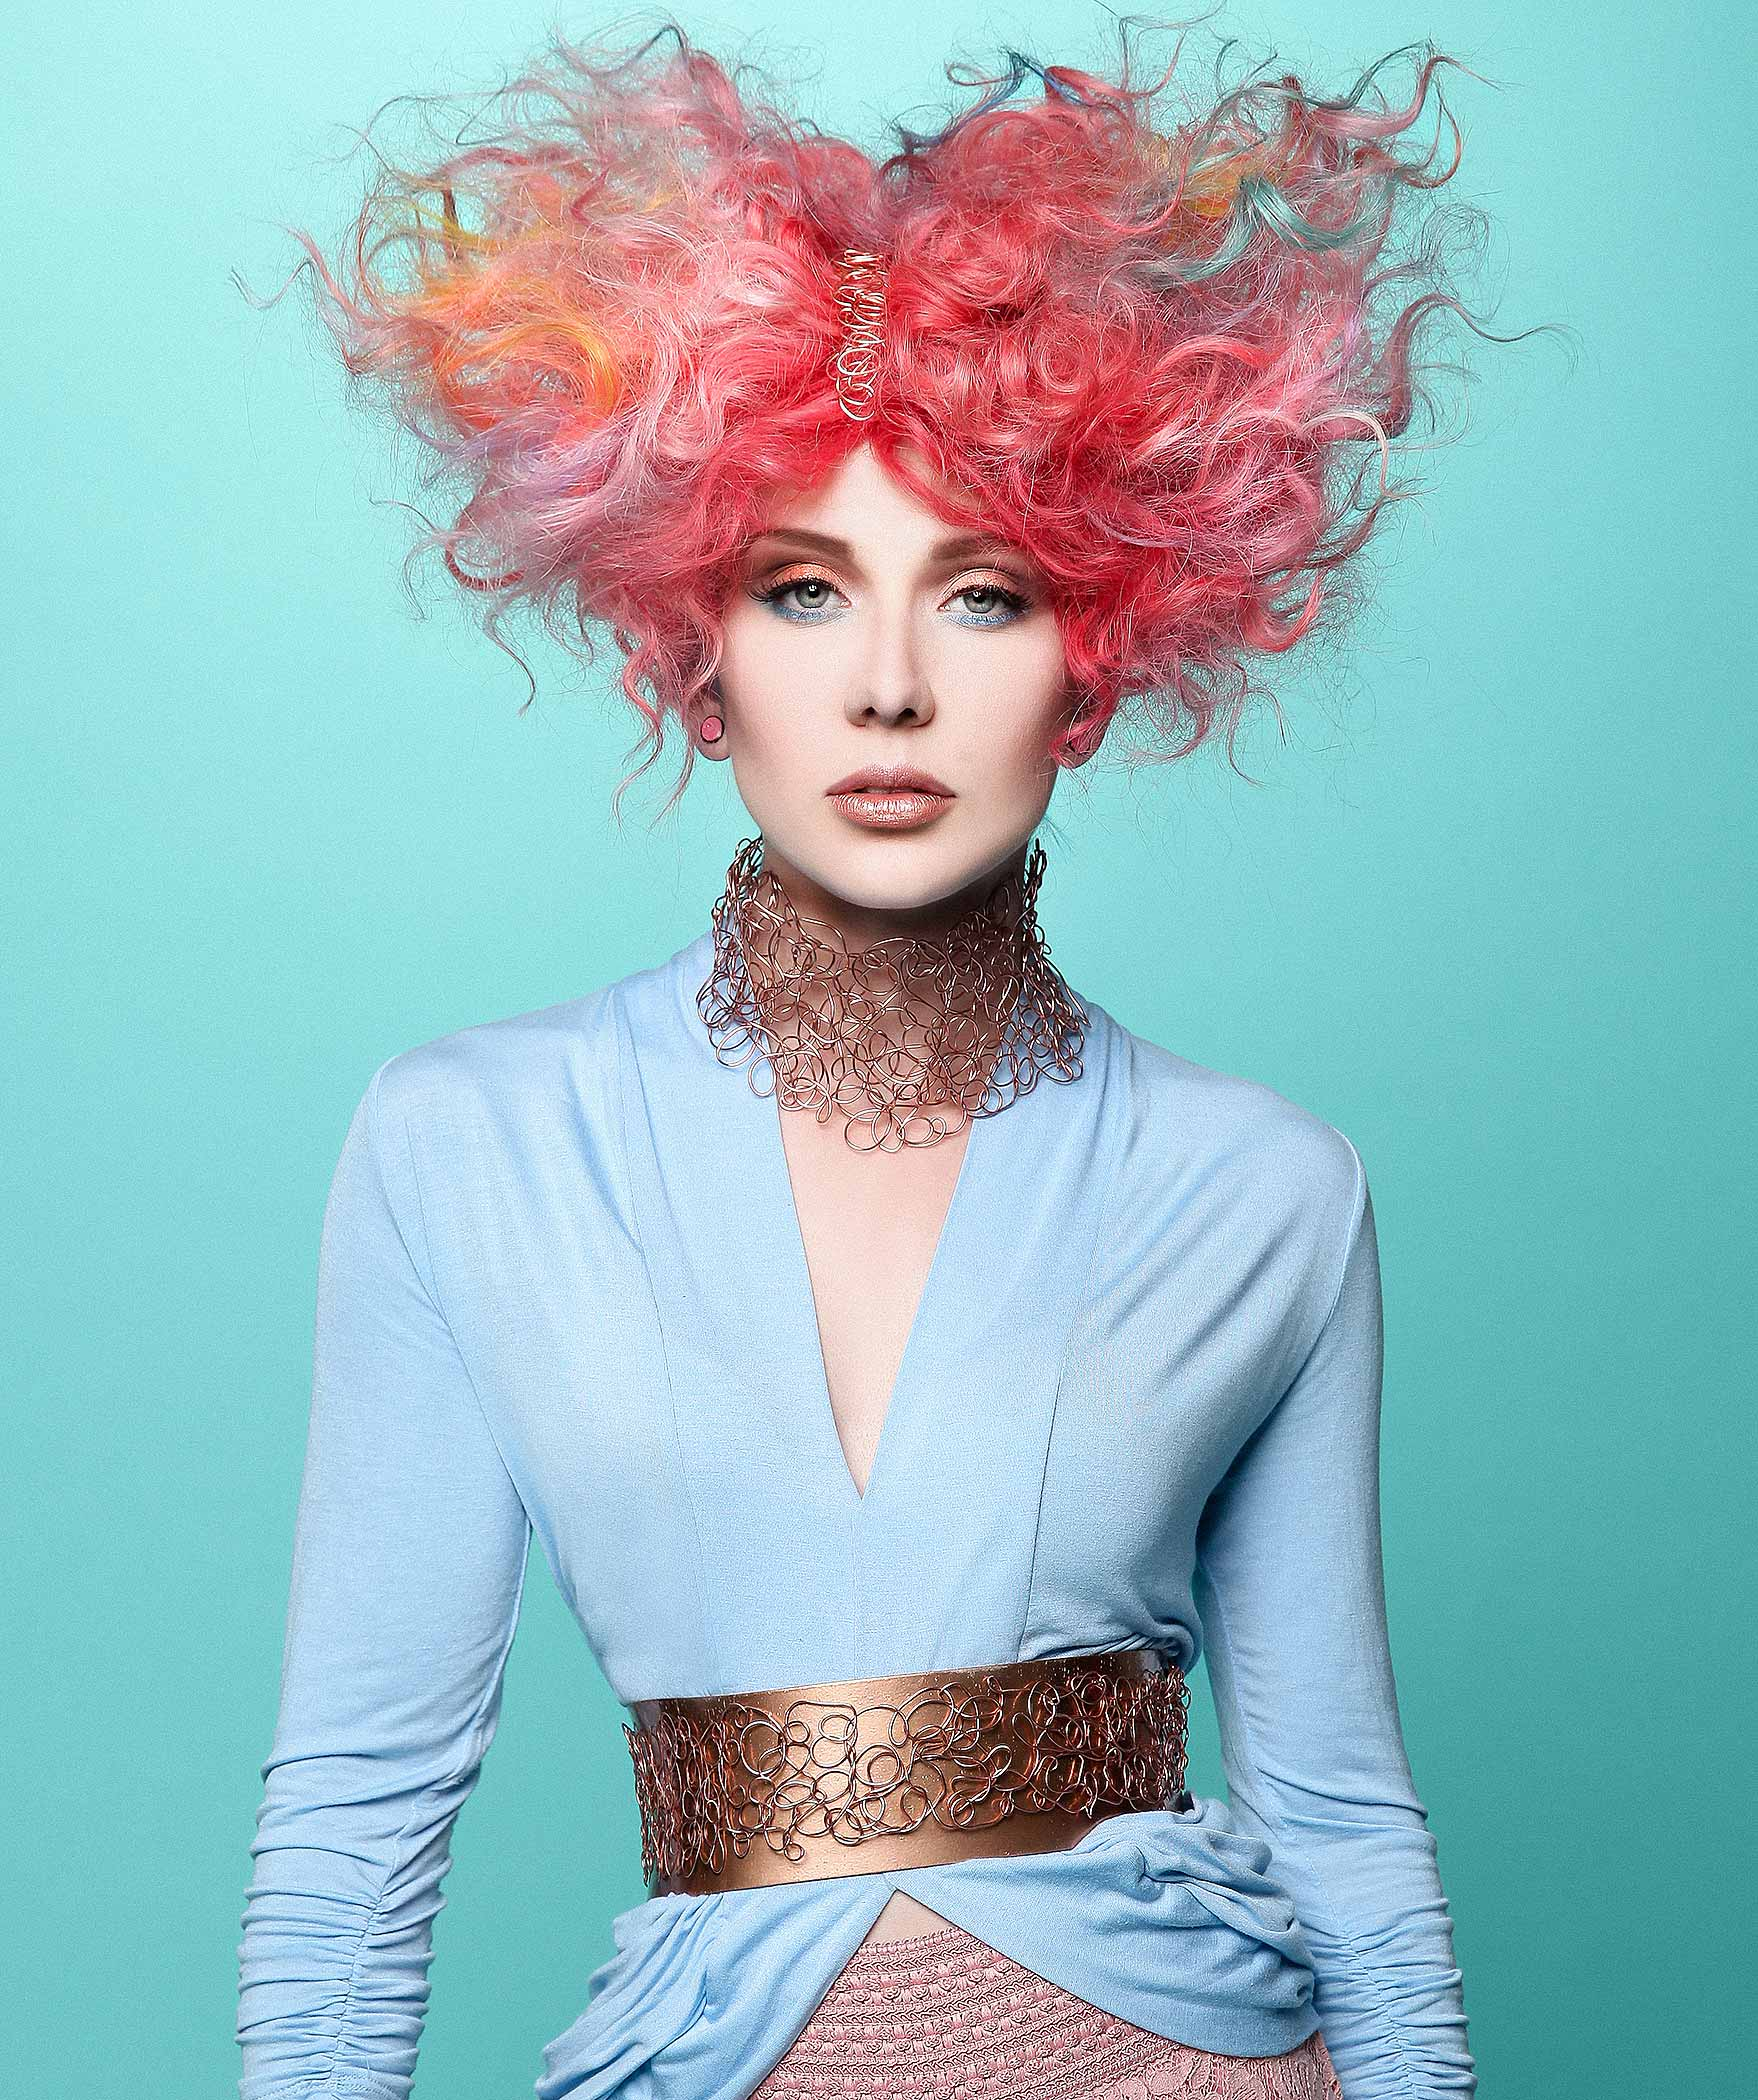 color-texture-hair-competition-salon-magazine-contessa-finalist-nicole-pede-paula-tizzard-photographer